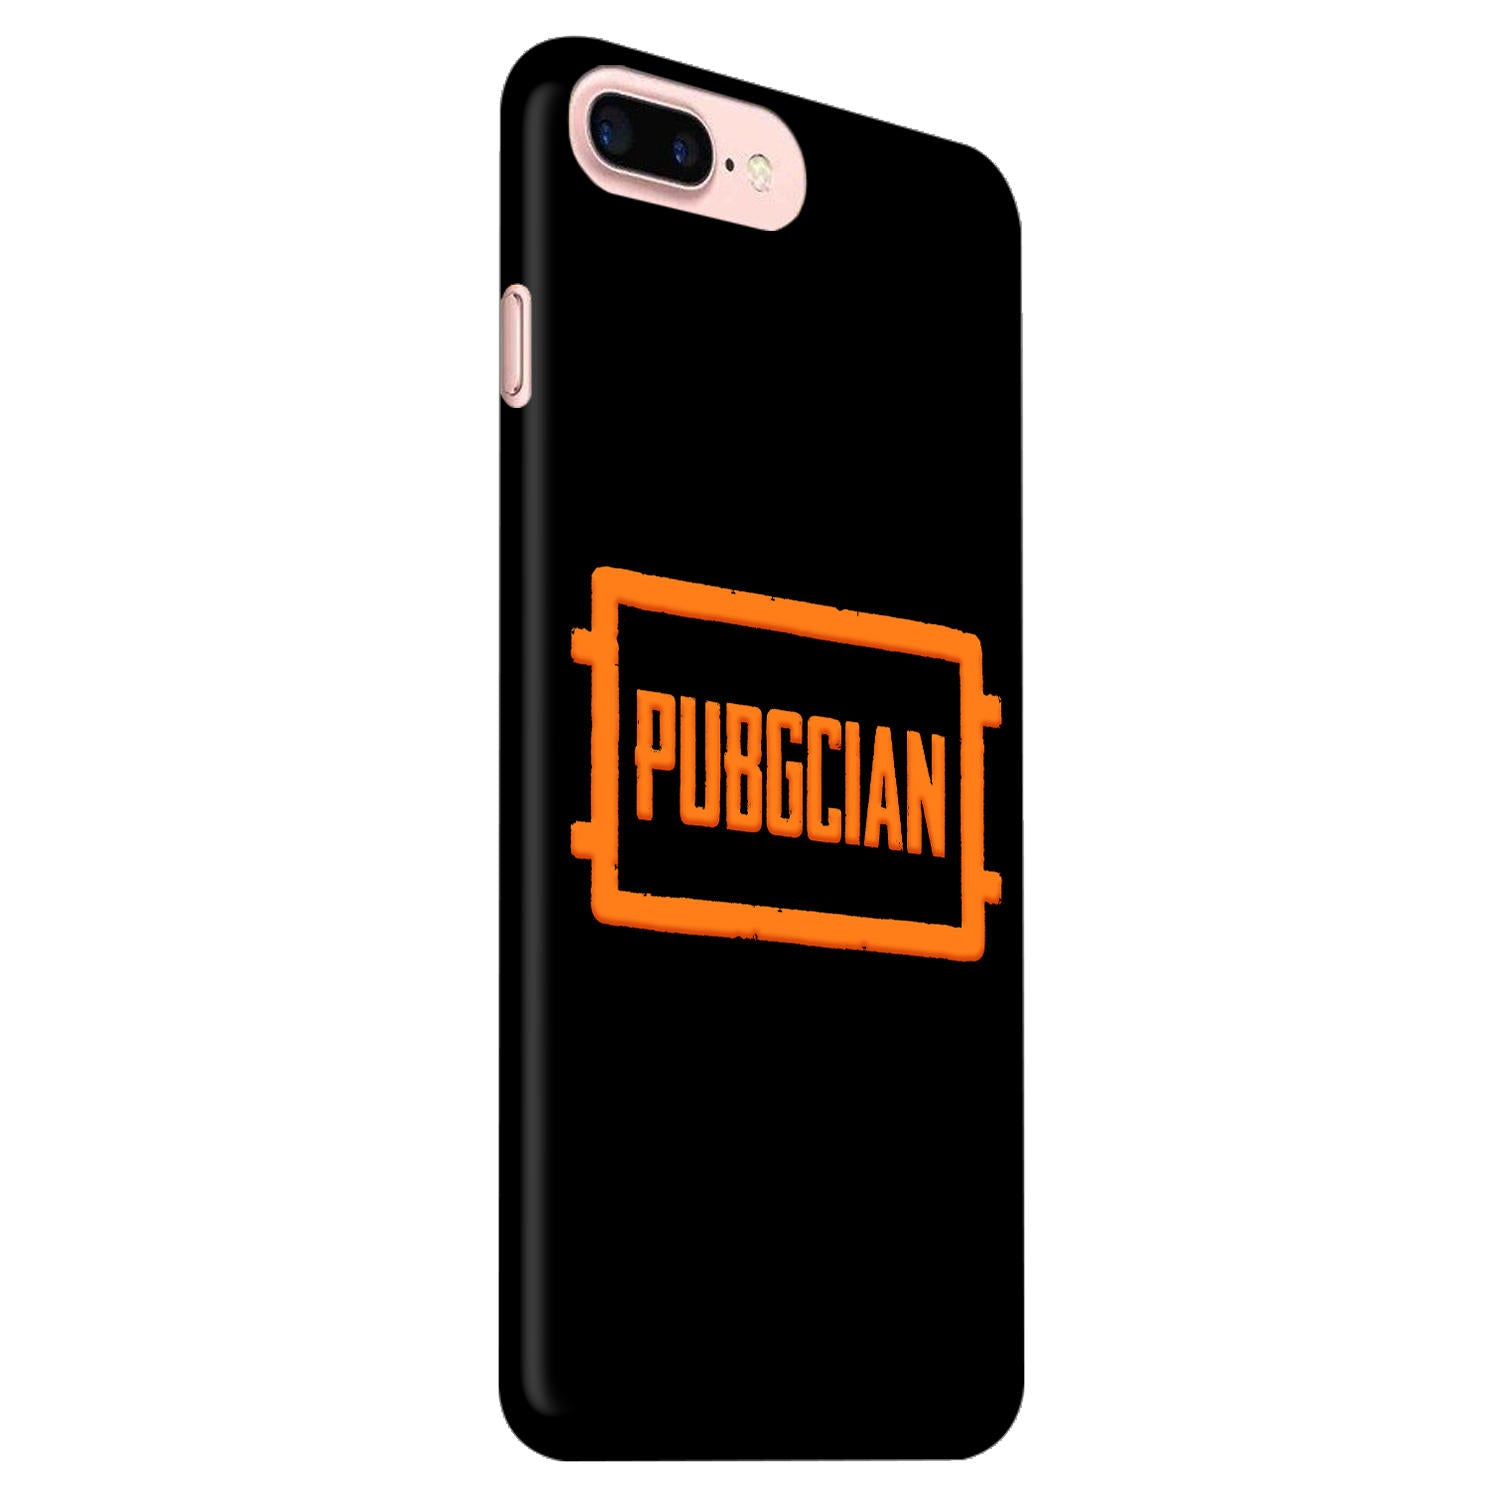 Pubgcian For Game Lovers iPhone 8 Plus Mobile Cover Case - MADANYU